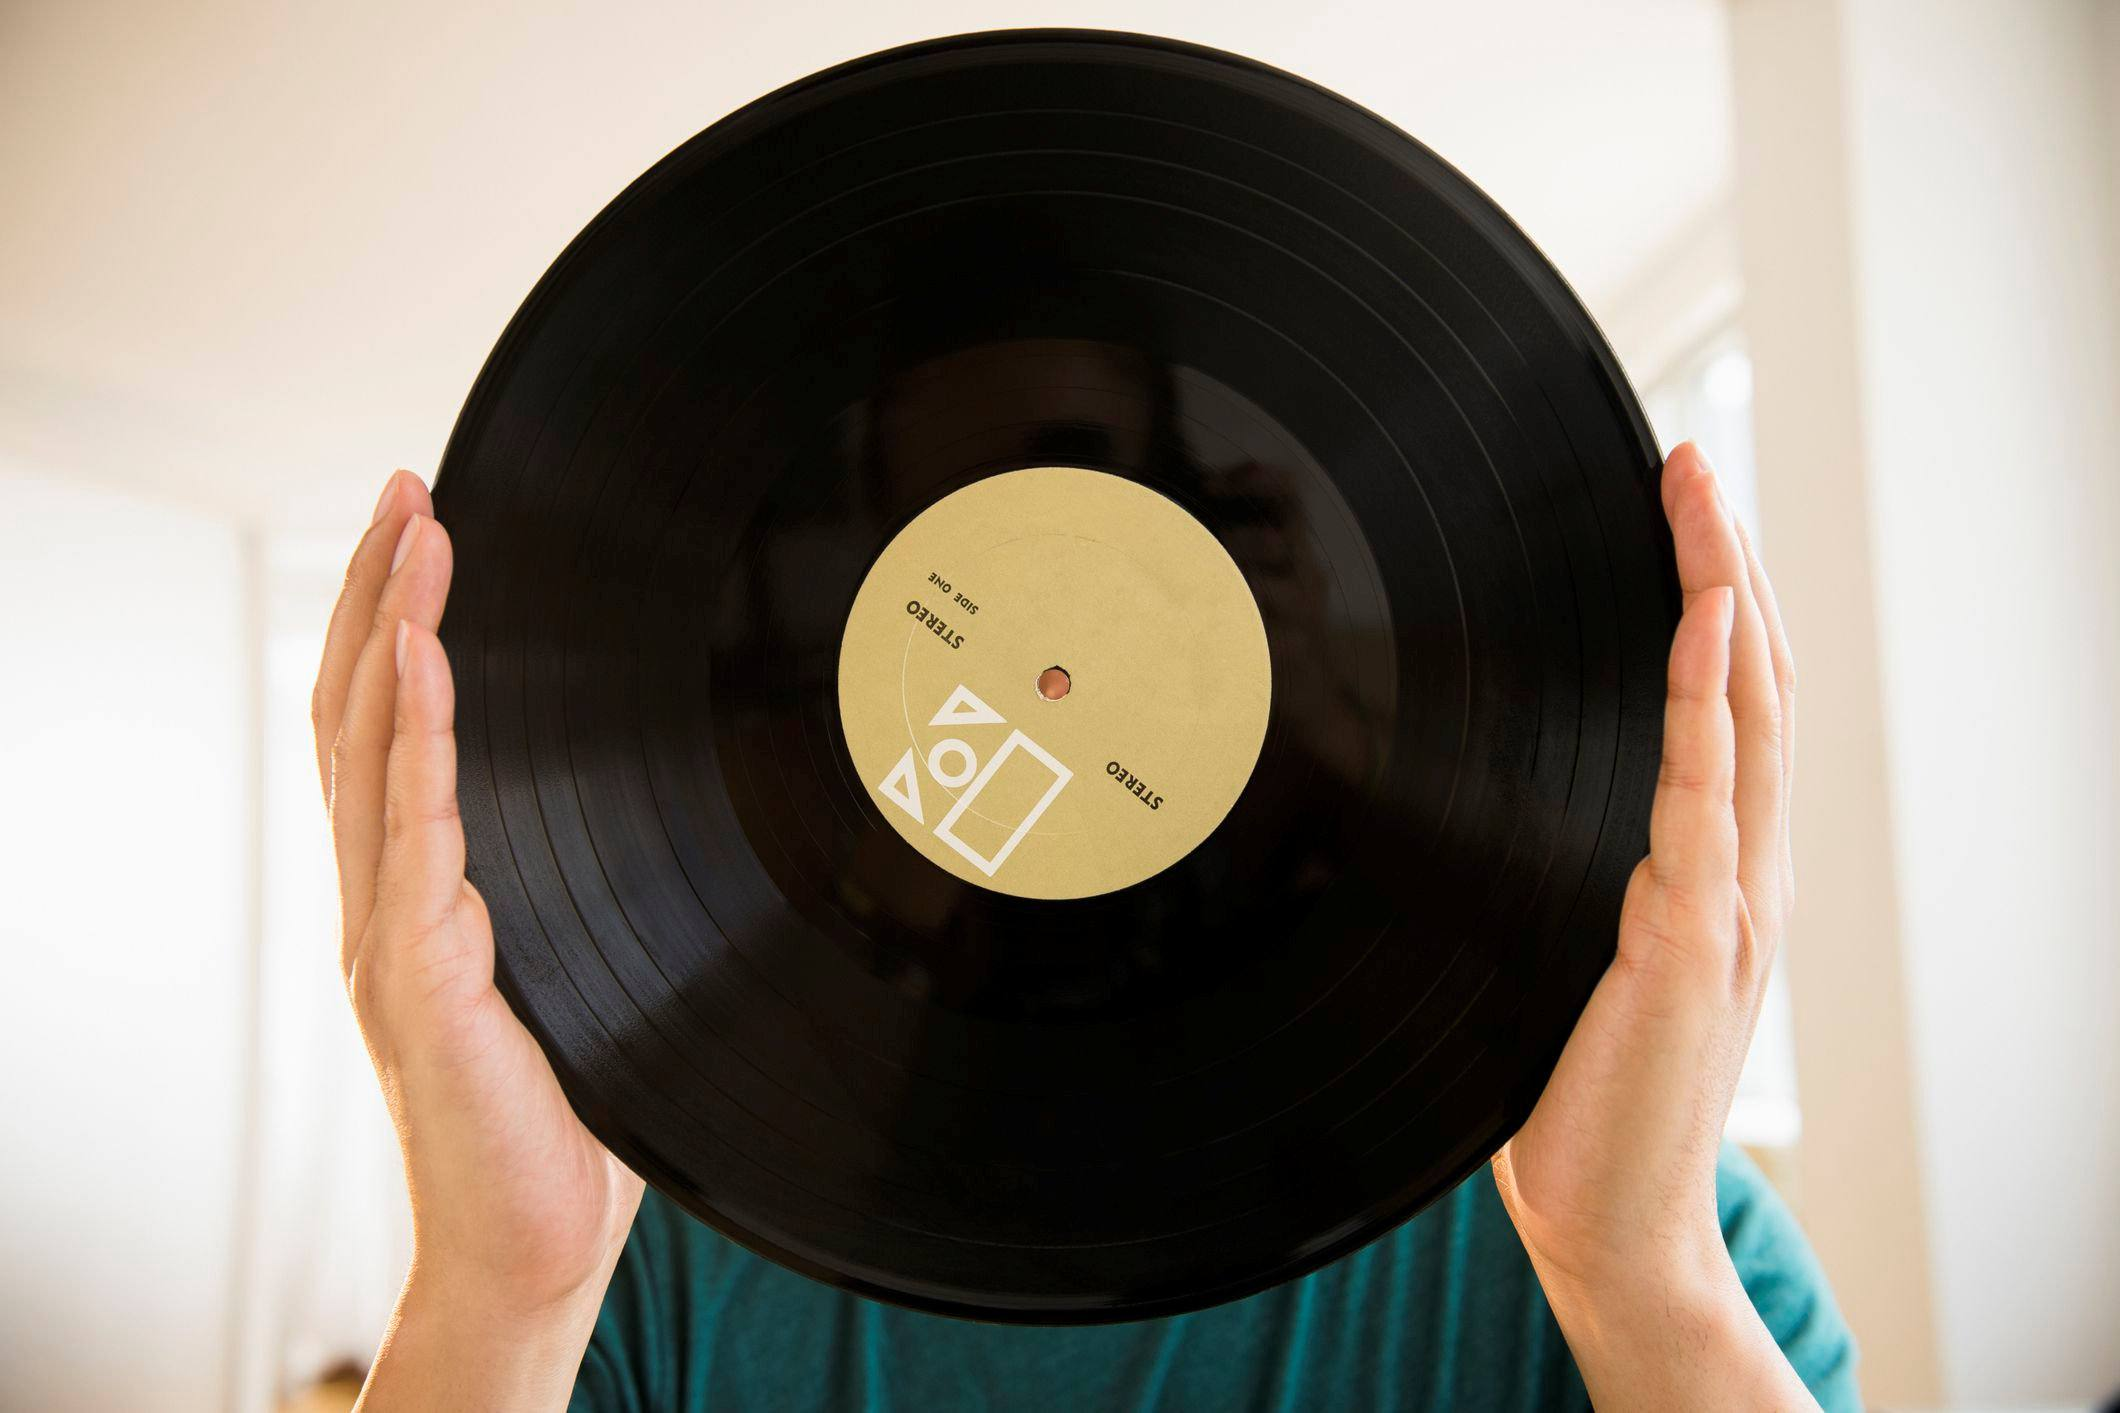 hands holding up a vinyl record